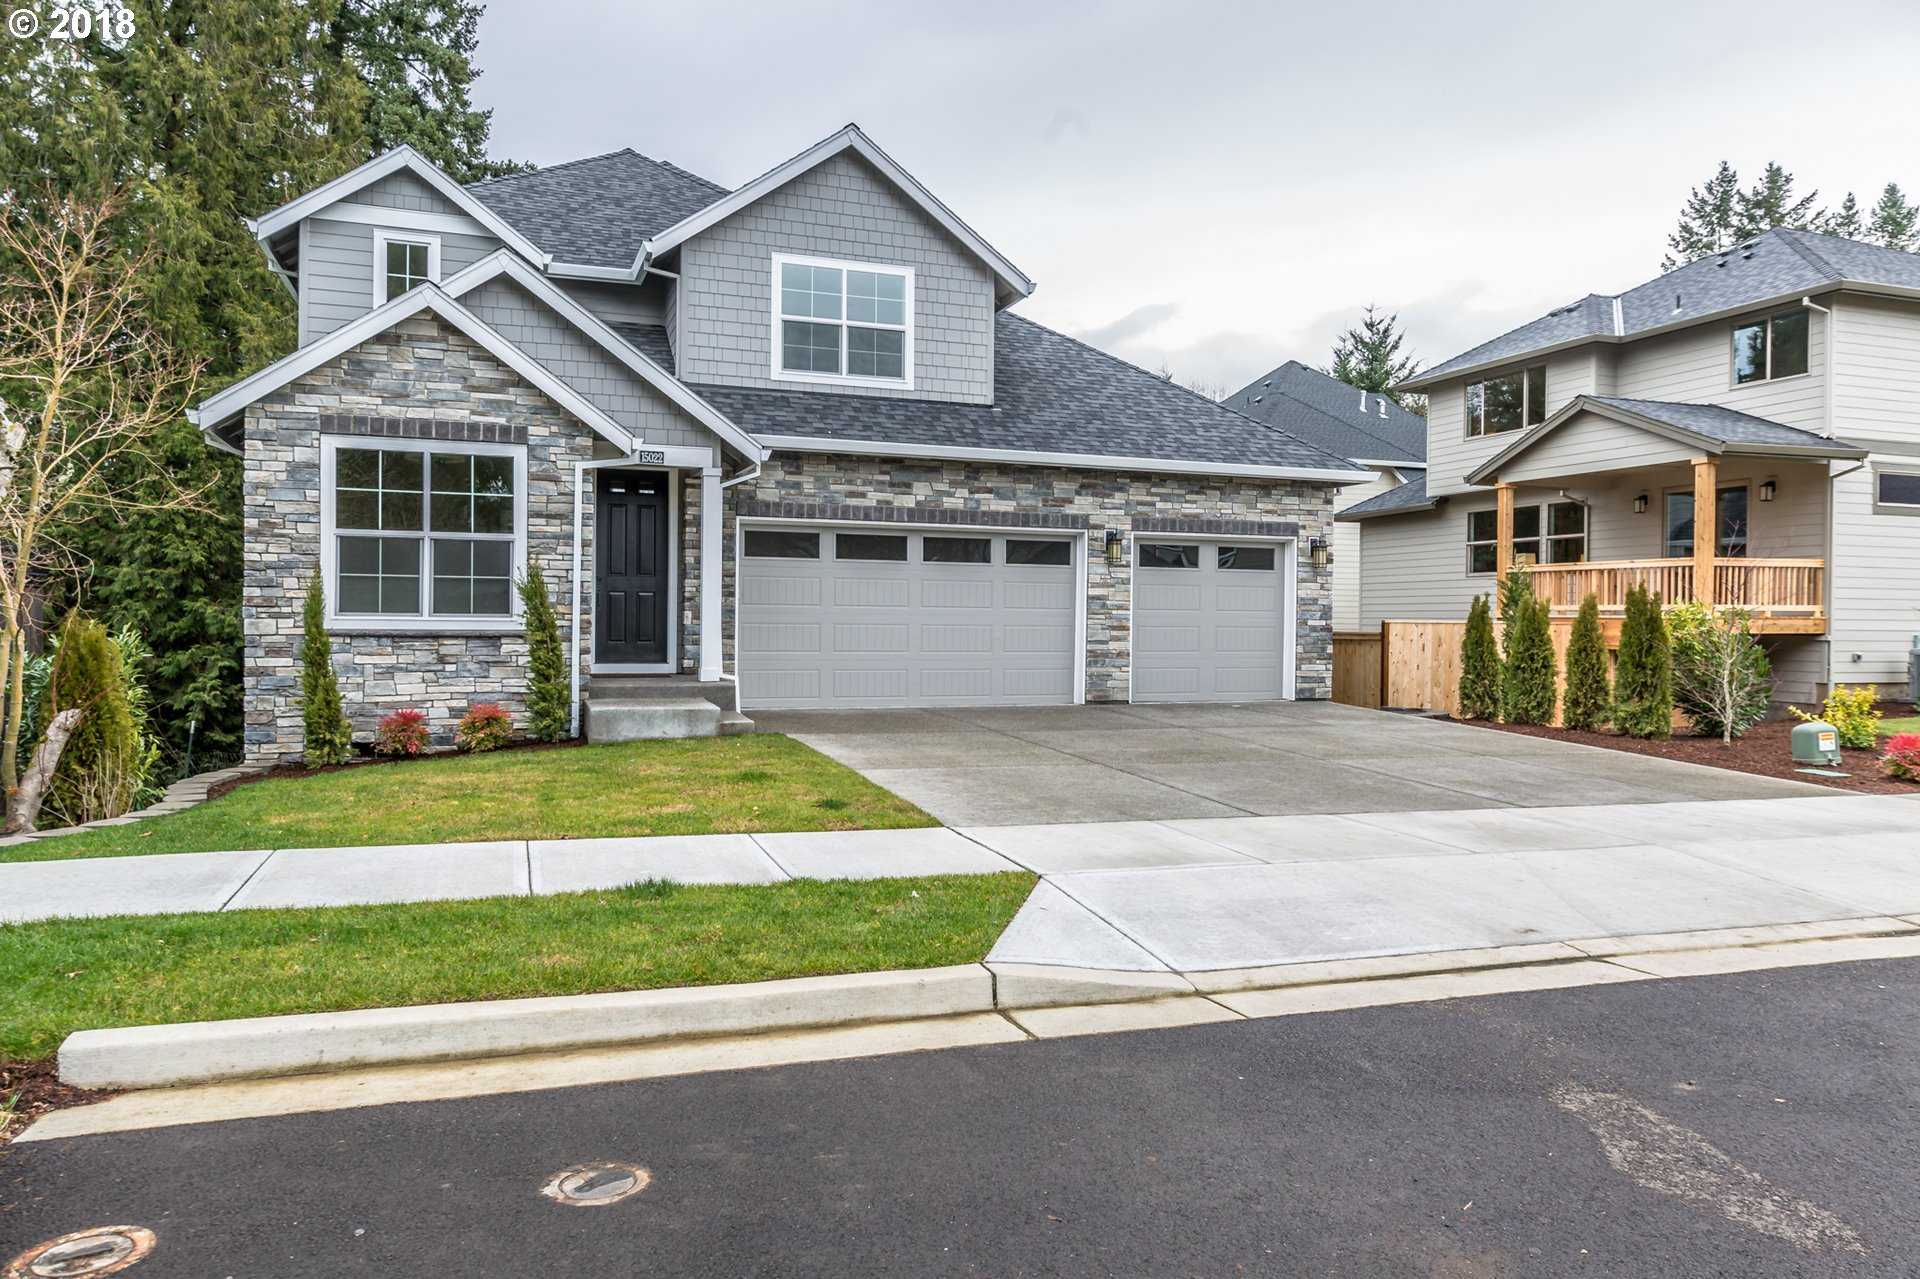 $724,990 - 4Br/4Ba -  for Sale in Tigard